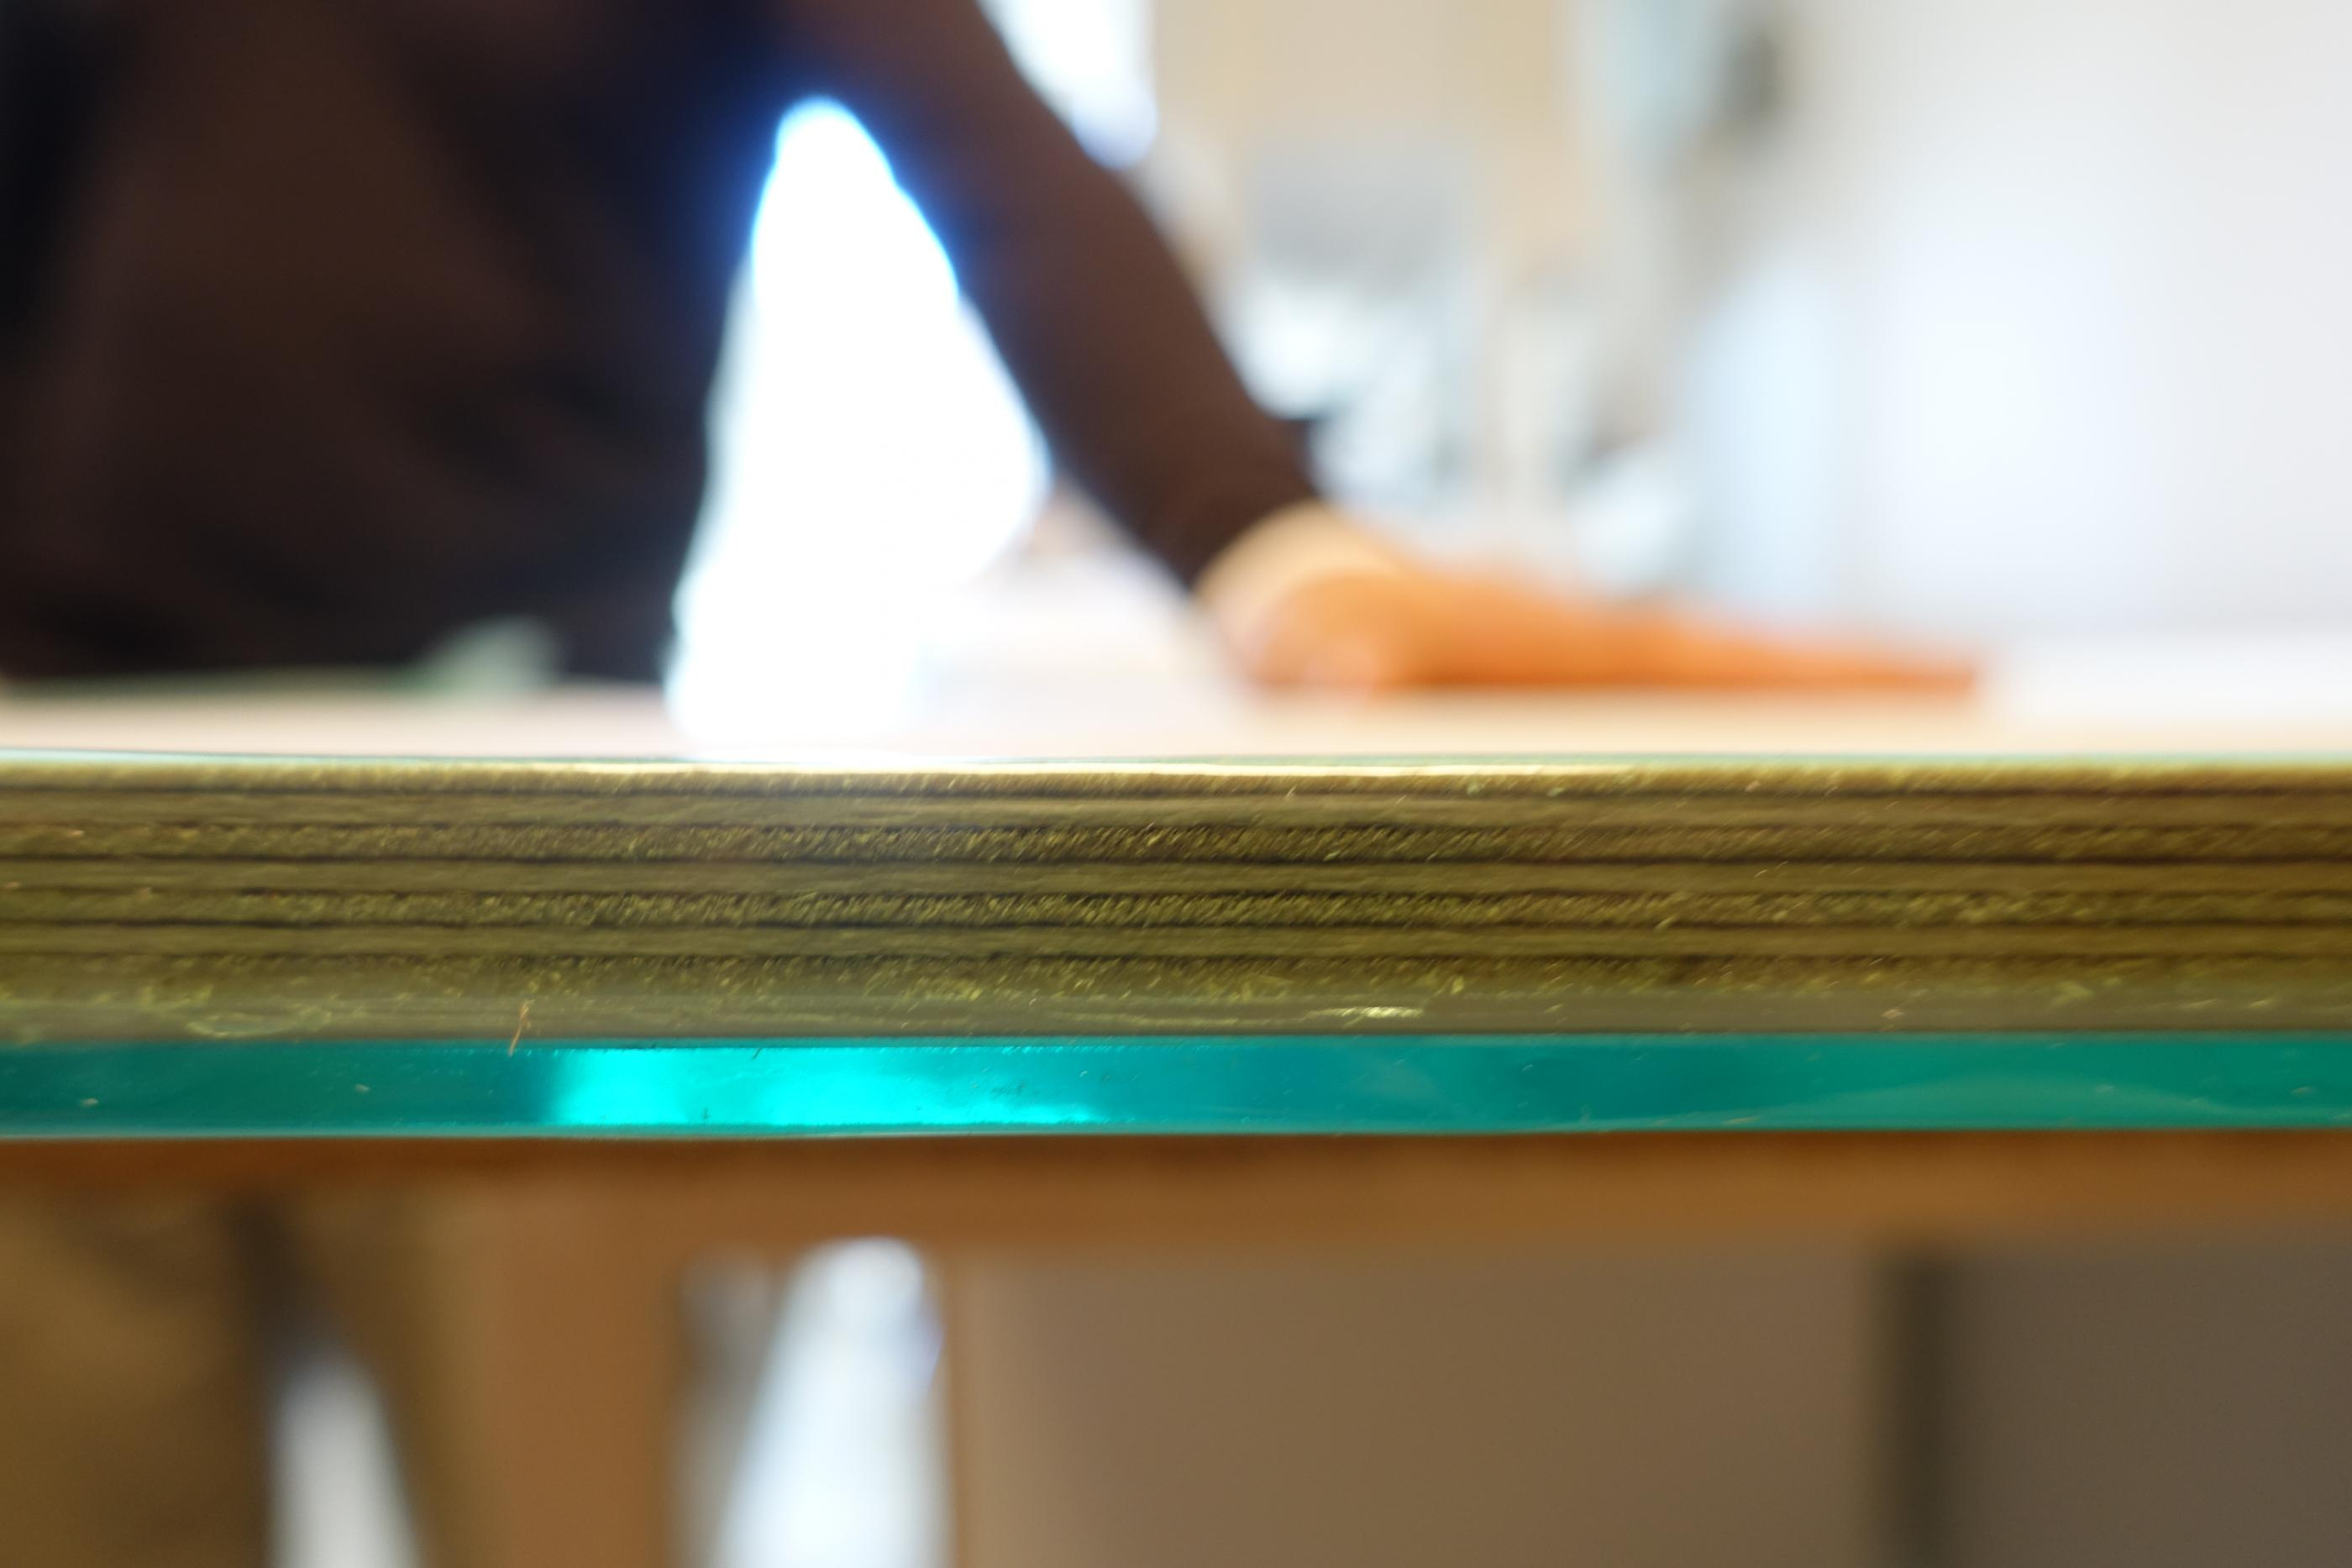 Laminated glas and wood